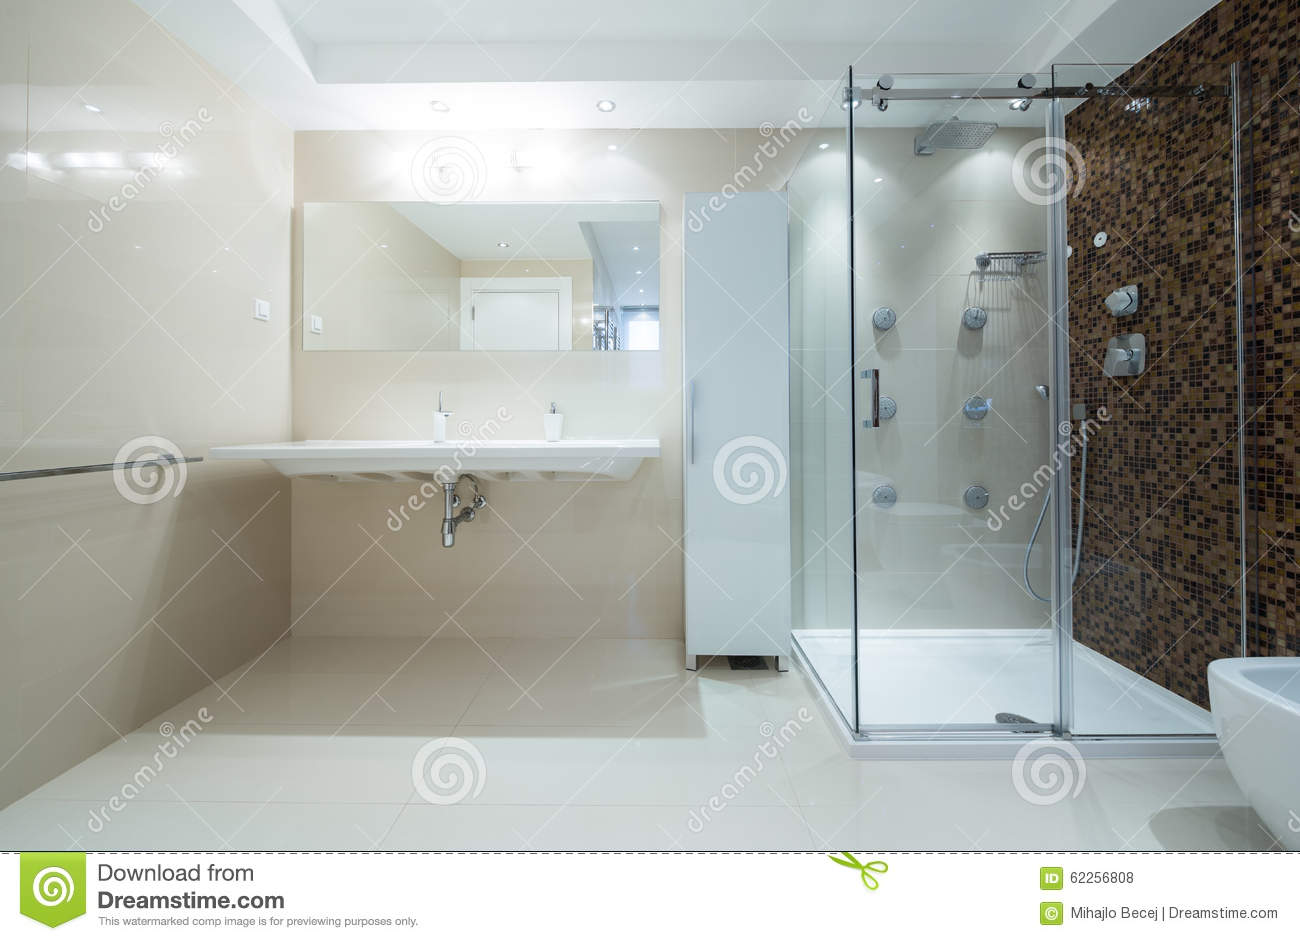 Interior Of A Modern Bathroom With Shower Cabin Stock Photo - Image ...